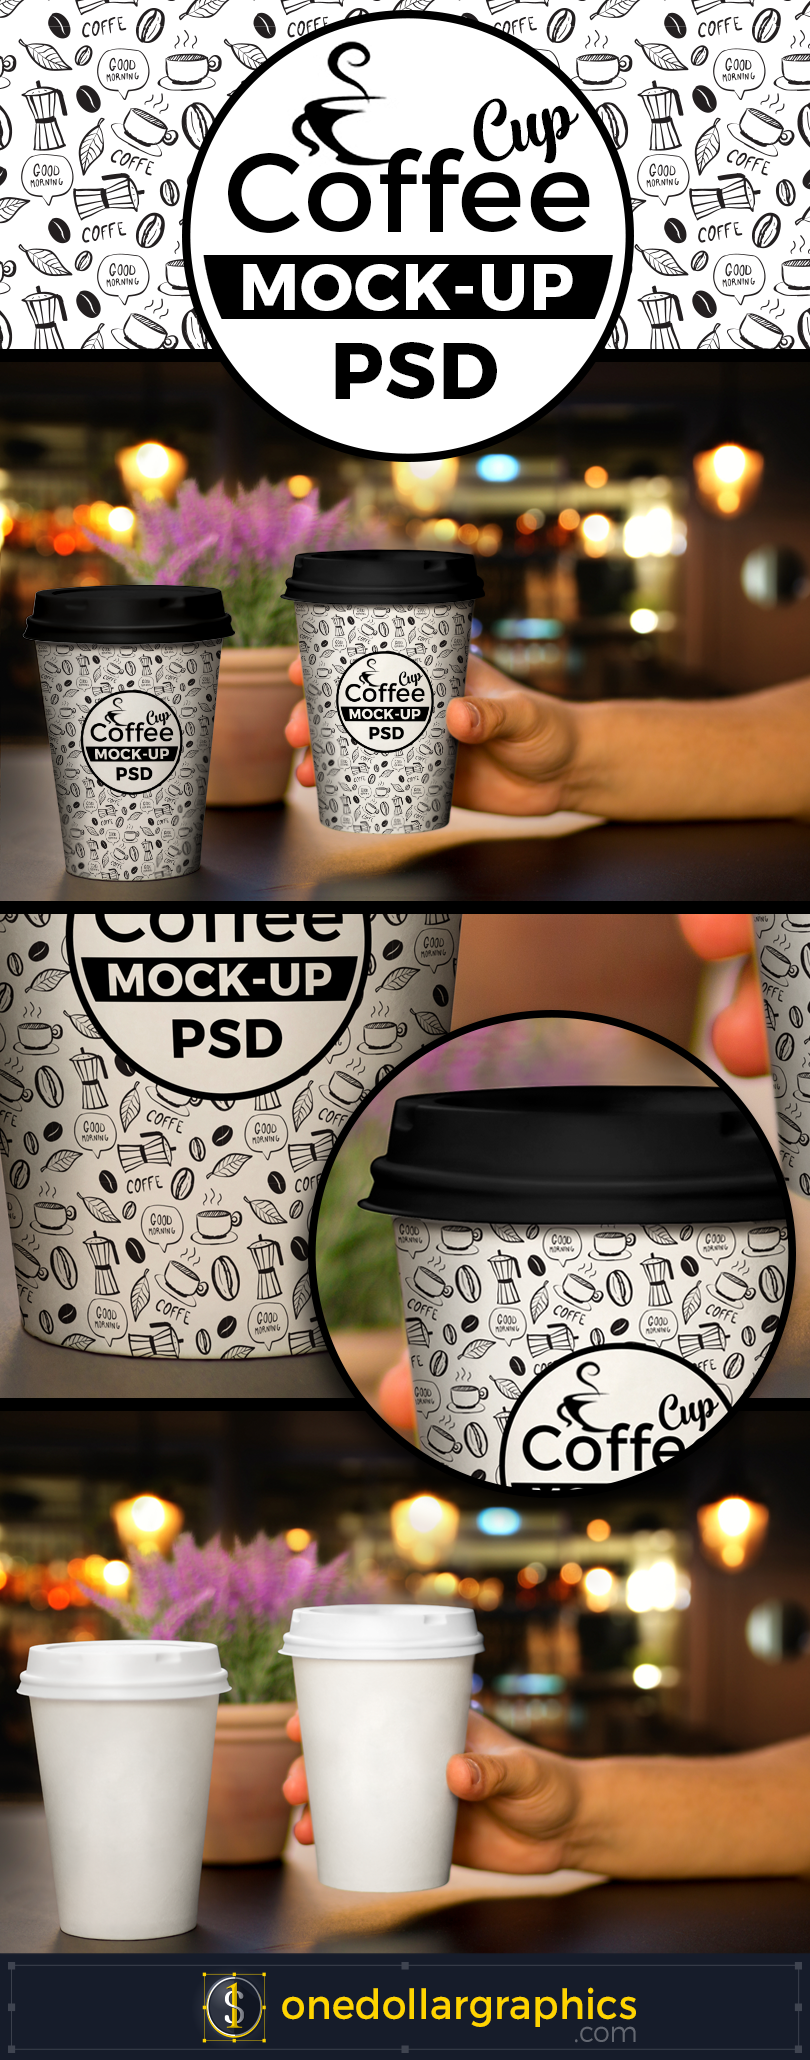 Free-Coffee-Cup-Mockup-PSD-Post-2